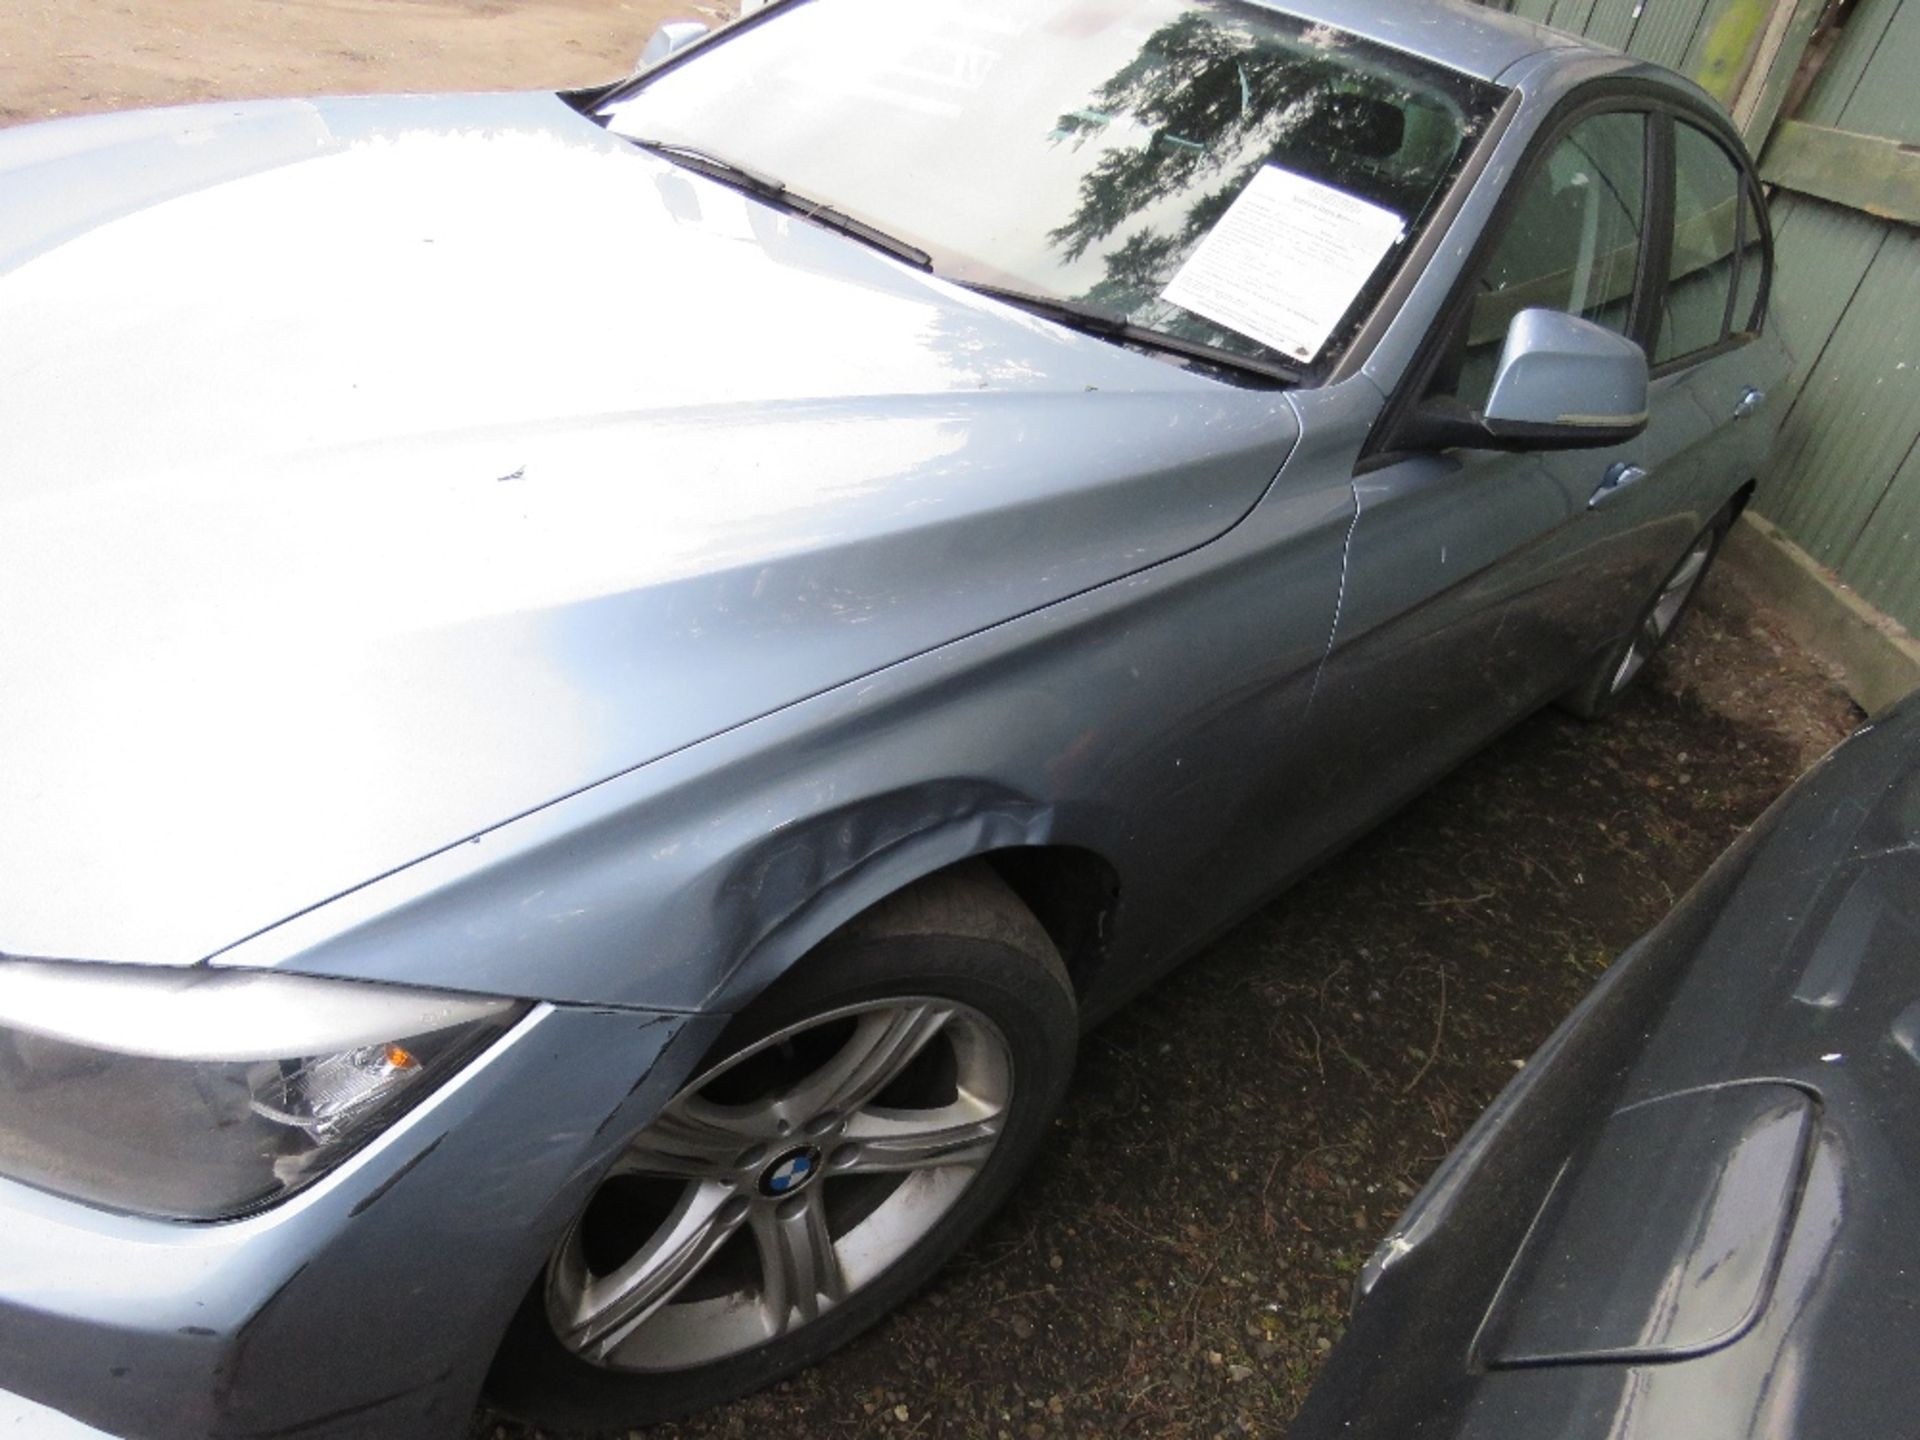 Lot 1737 - BMW 320D SE saloon car, reg. WF14 KXE